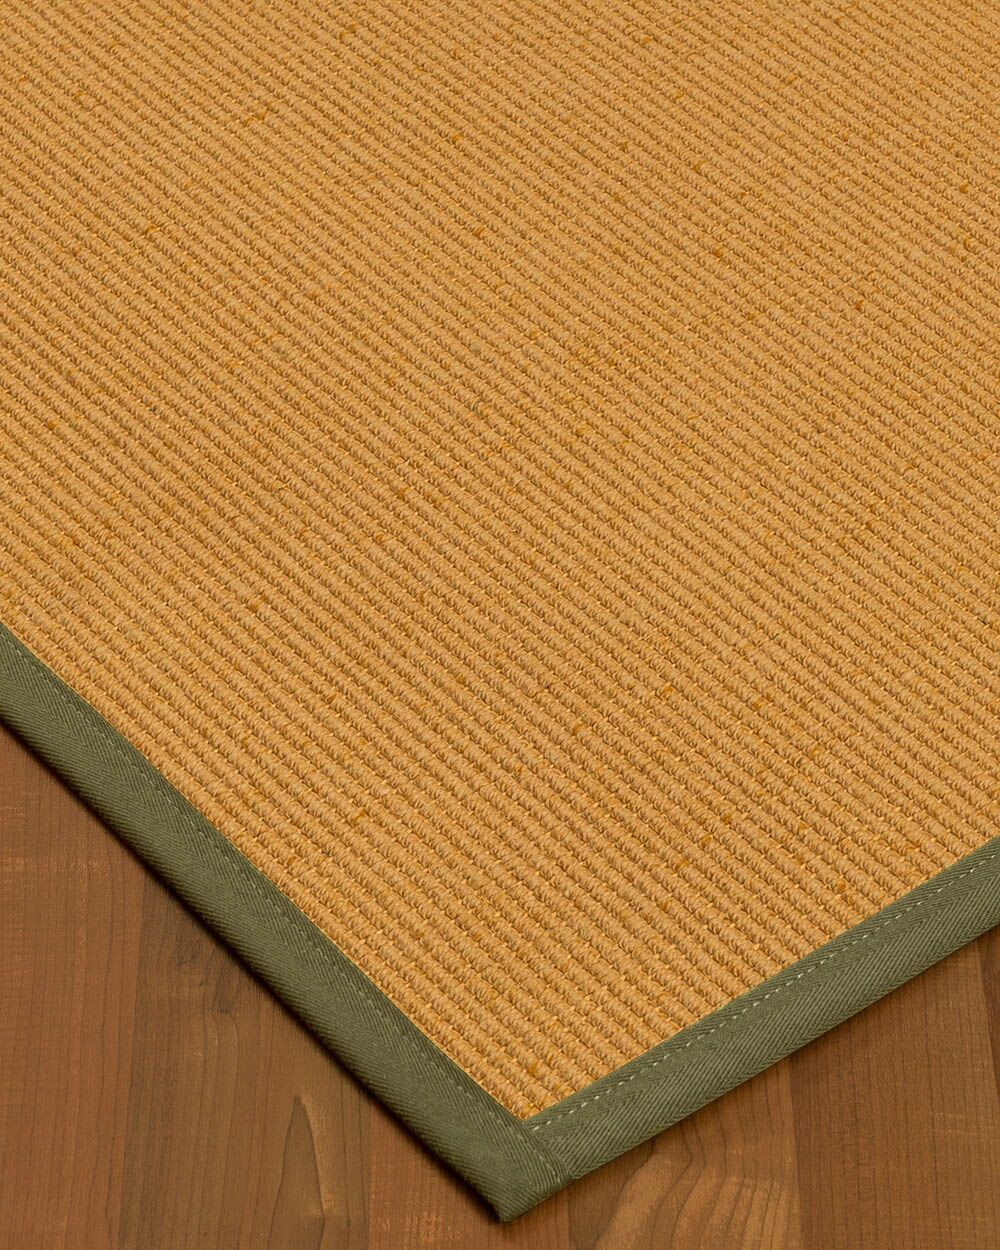 Vannatter Border Hand-Woven Beige/Green Area Rug Rug Size: Rectangle 5' x 8', Rug Pad Included: Yes